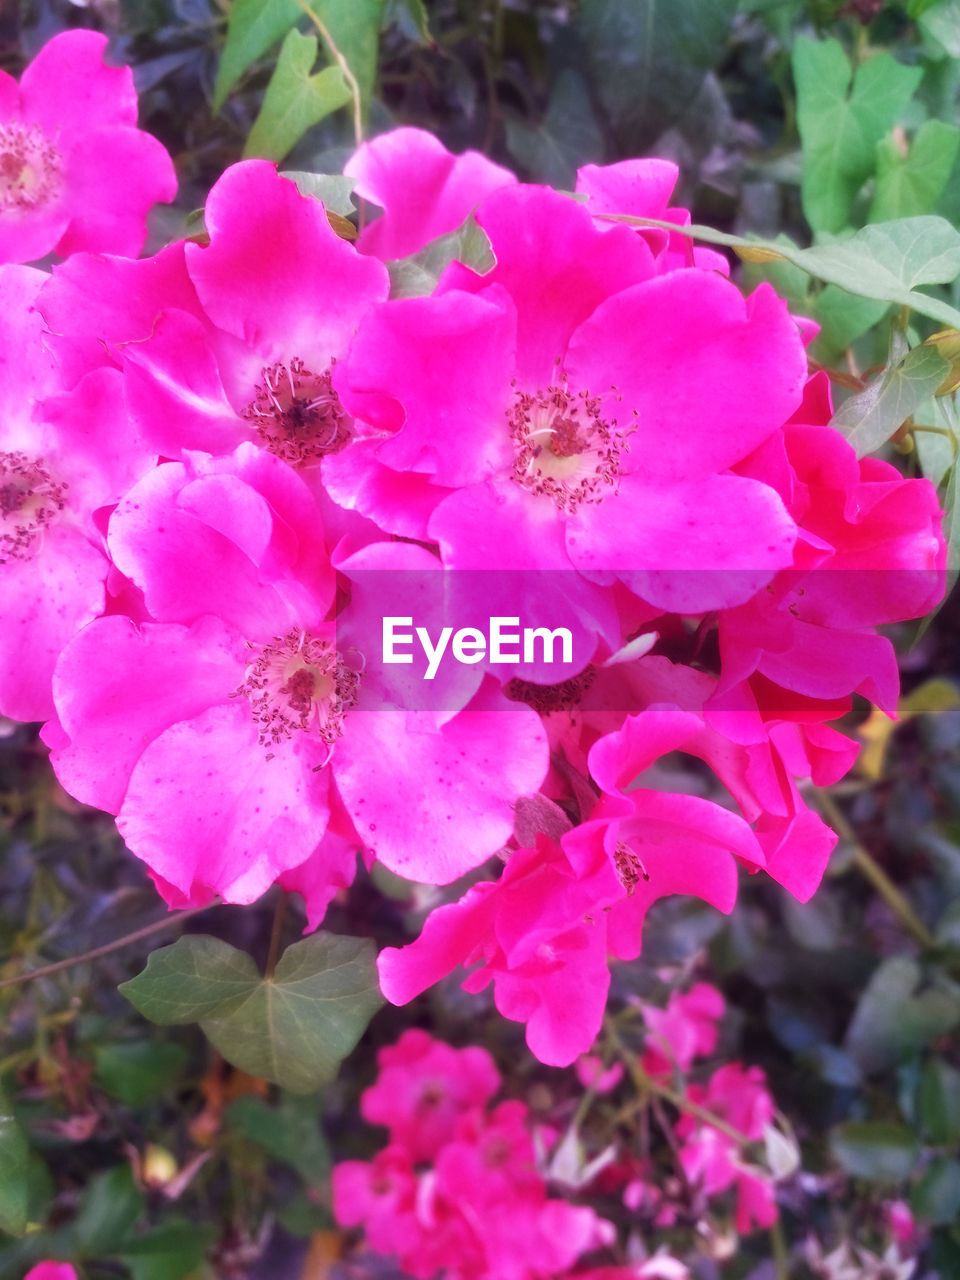 flower, pink color, petal, nature, plant, beauty in nature, growth, fragility, no people, outdoors, flower head, blooming, day, close-up, freshness